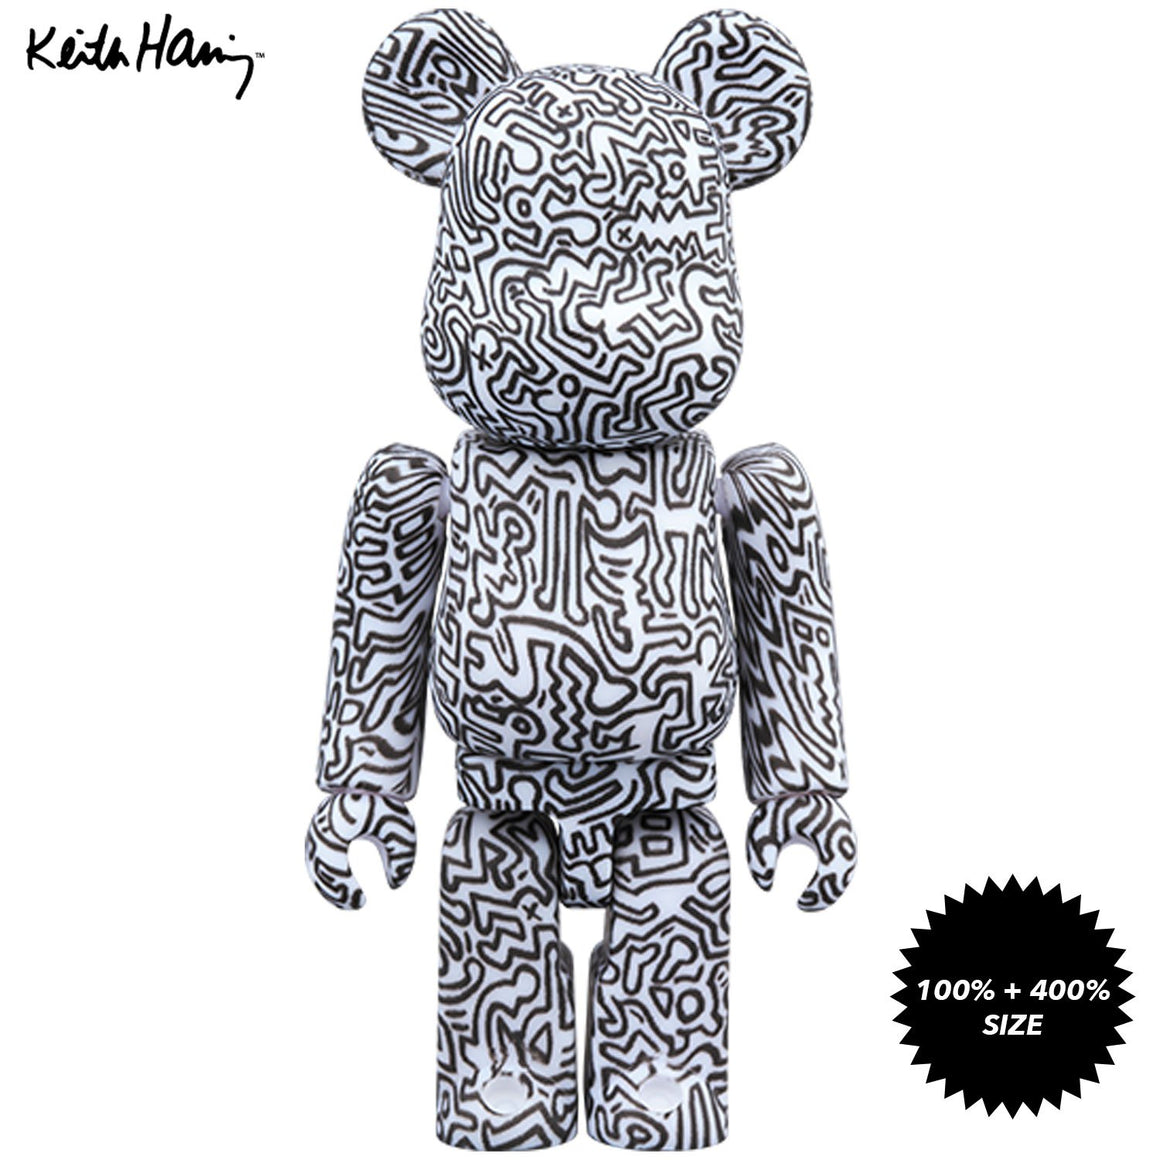 Keith Haring #4 100% + 400% Bearbrick Set by Medicom Toy